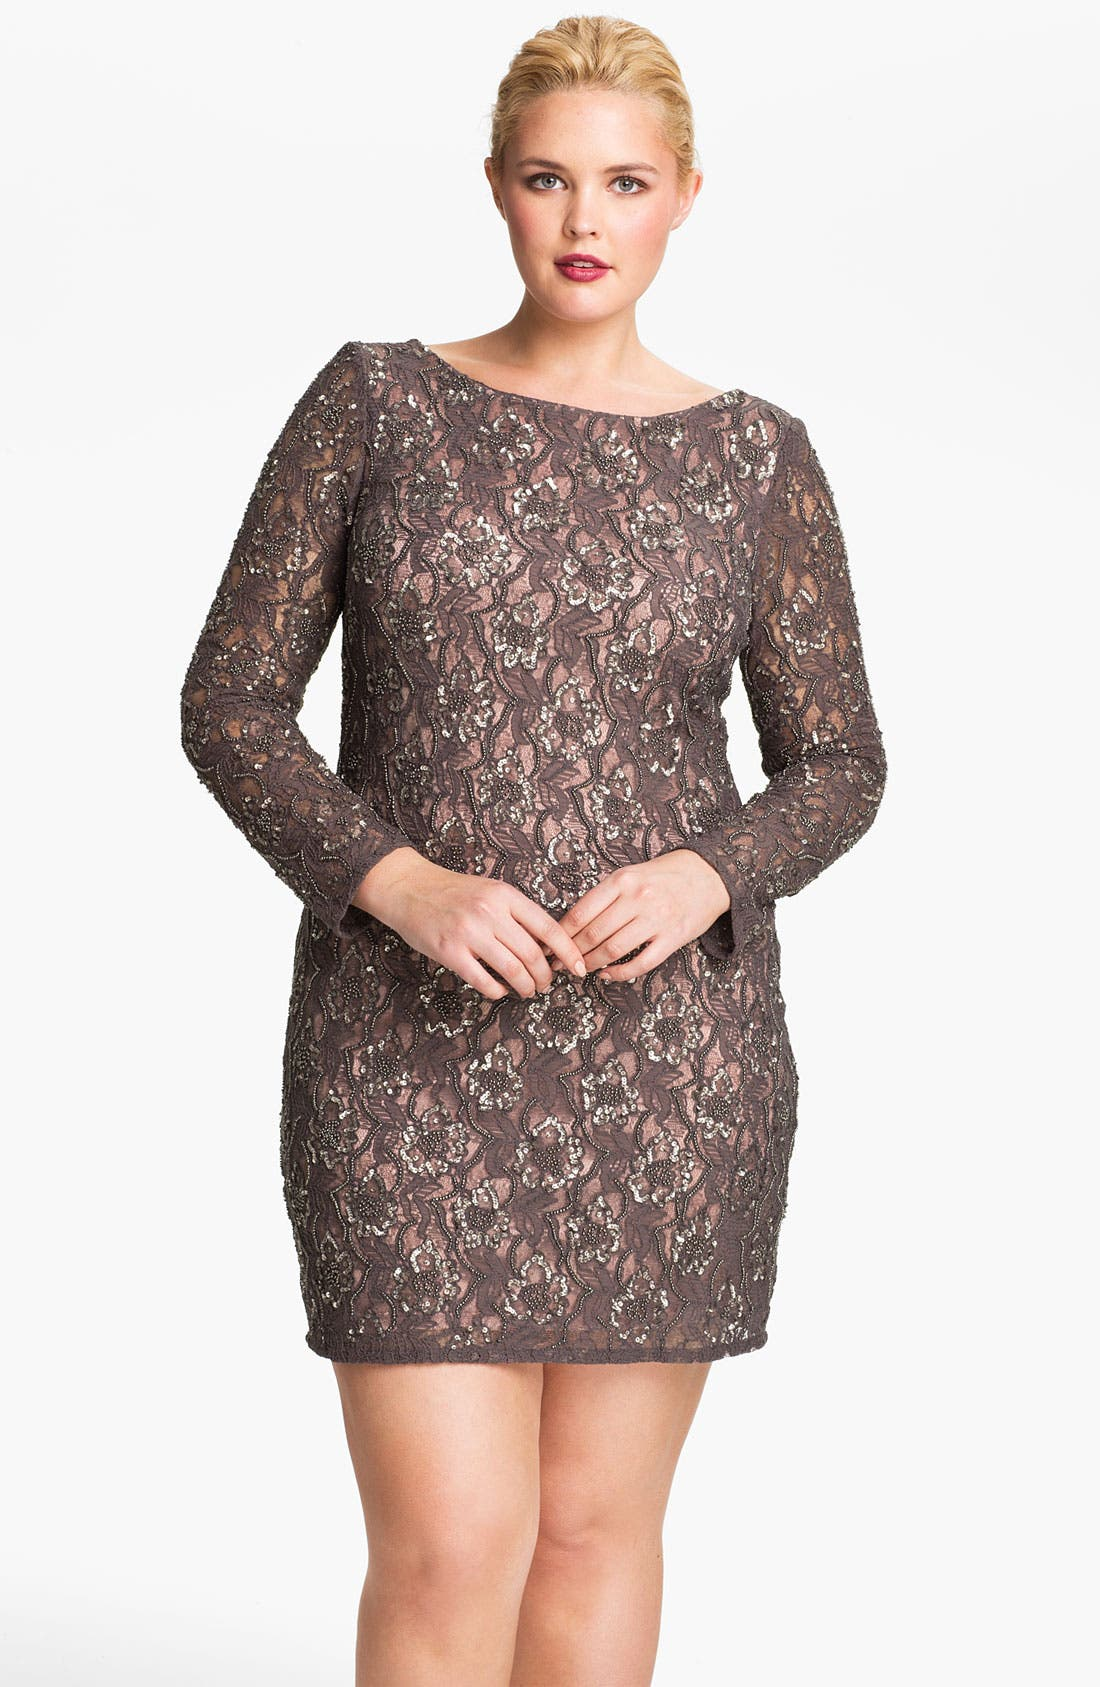 Alternate Image 1 Selected - Aidan Mattox Embellished V-Back Lace Sheath Dress (Plus)